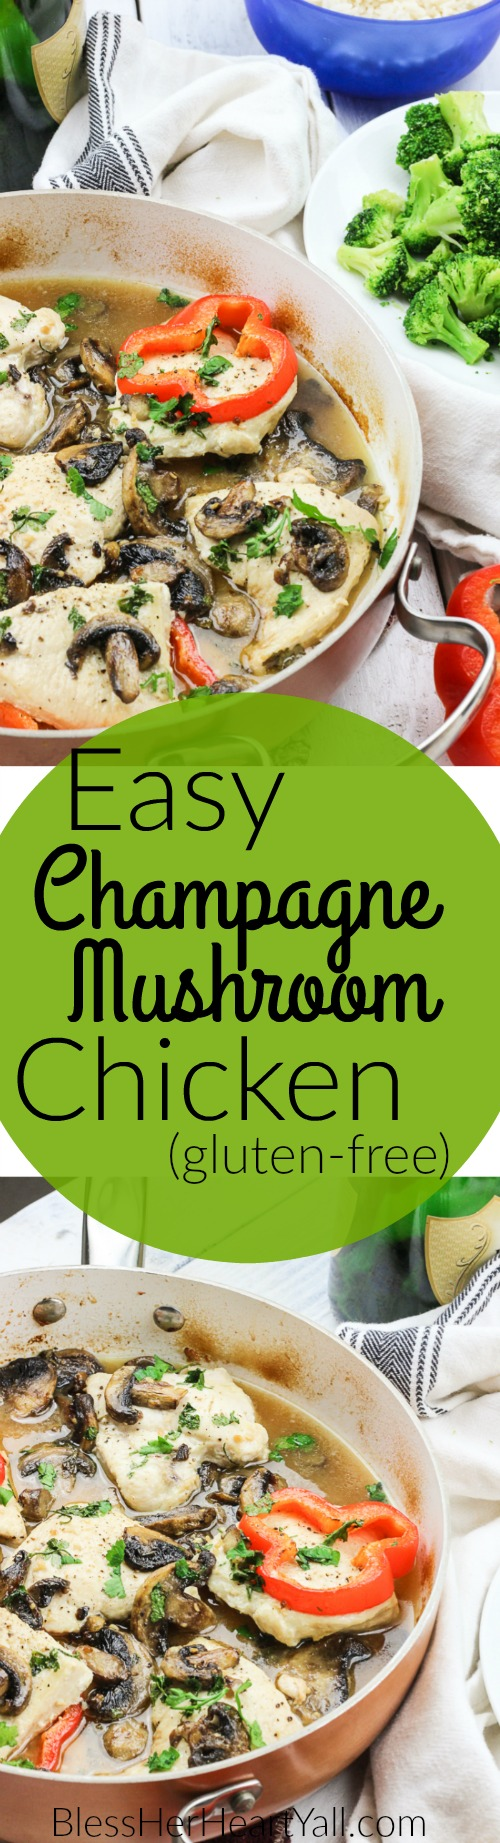 champagne mushroom chicken long pin 2